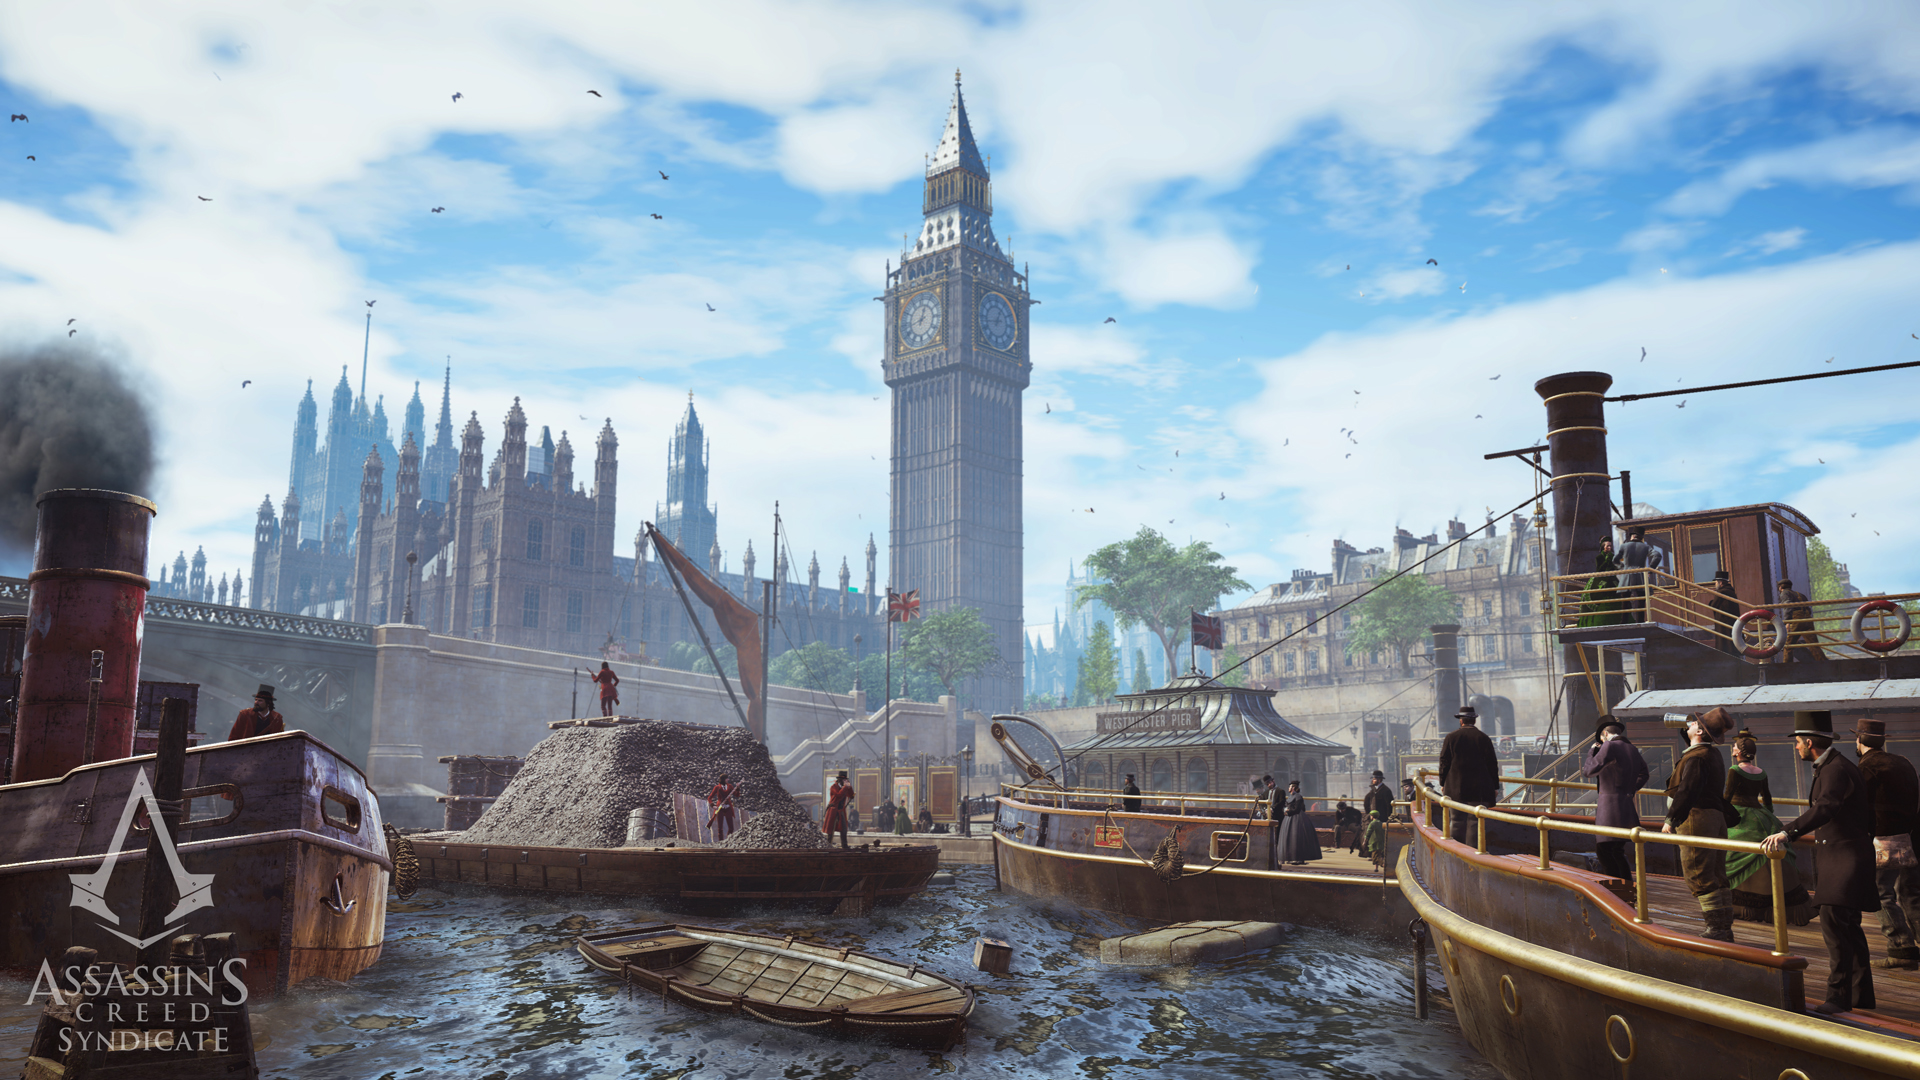 Visuel Londres Assassin's Creed Syndicate